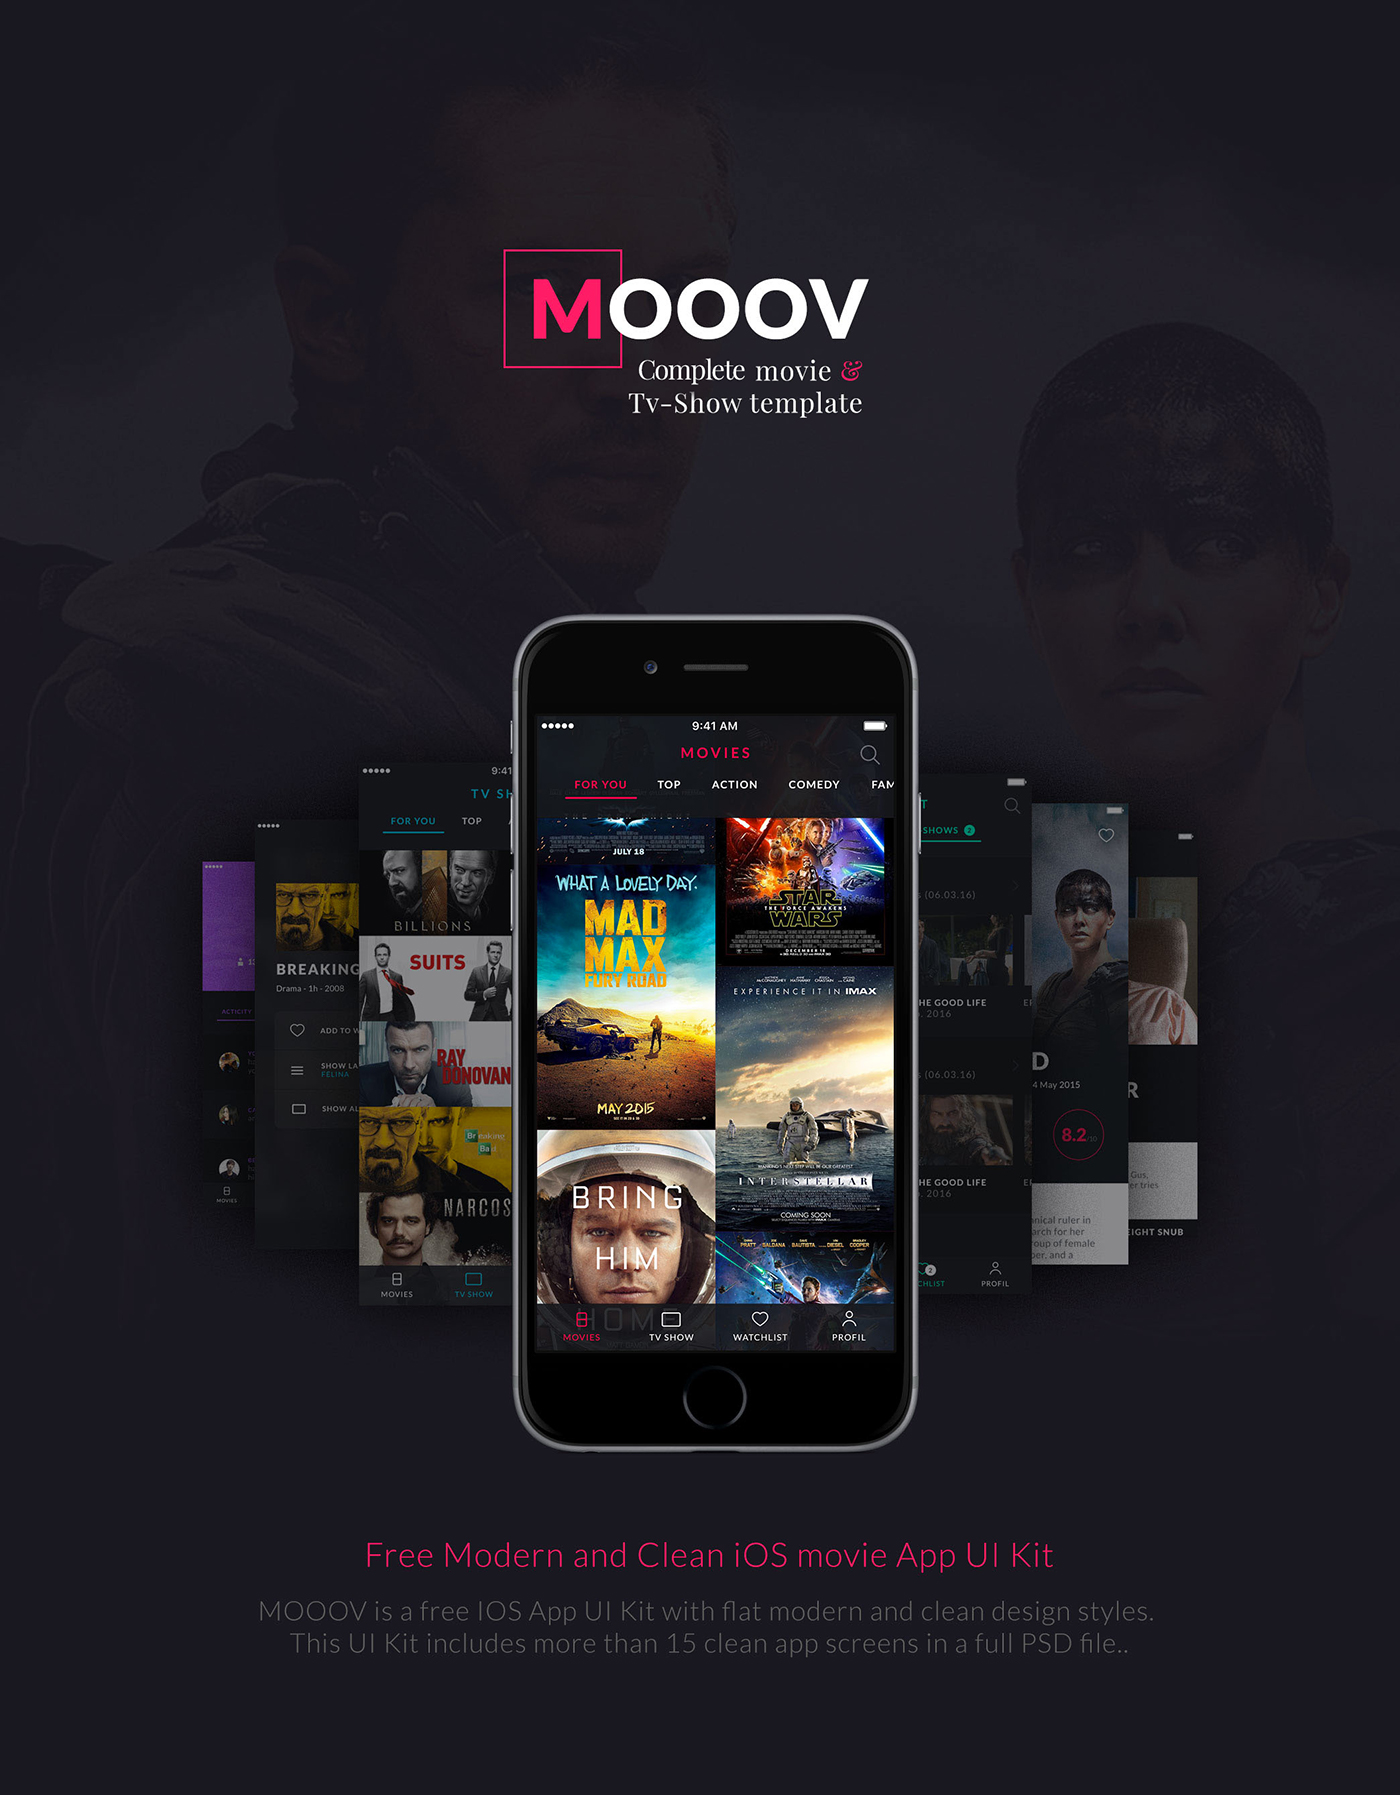 MOOOV - Available on Template monster on Behance